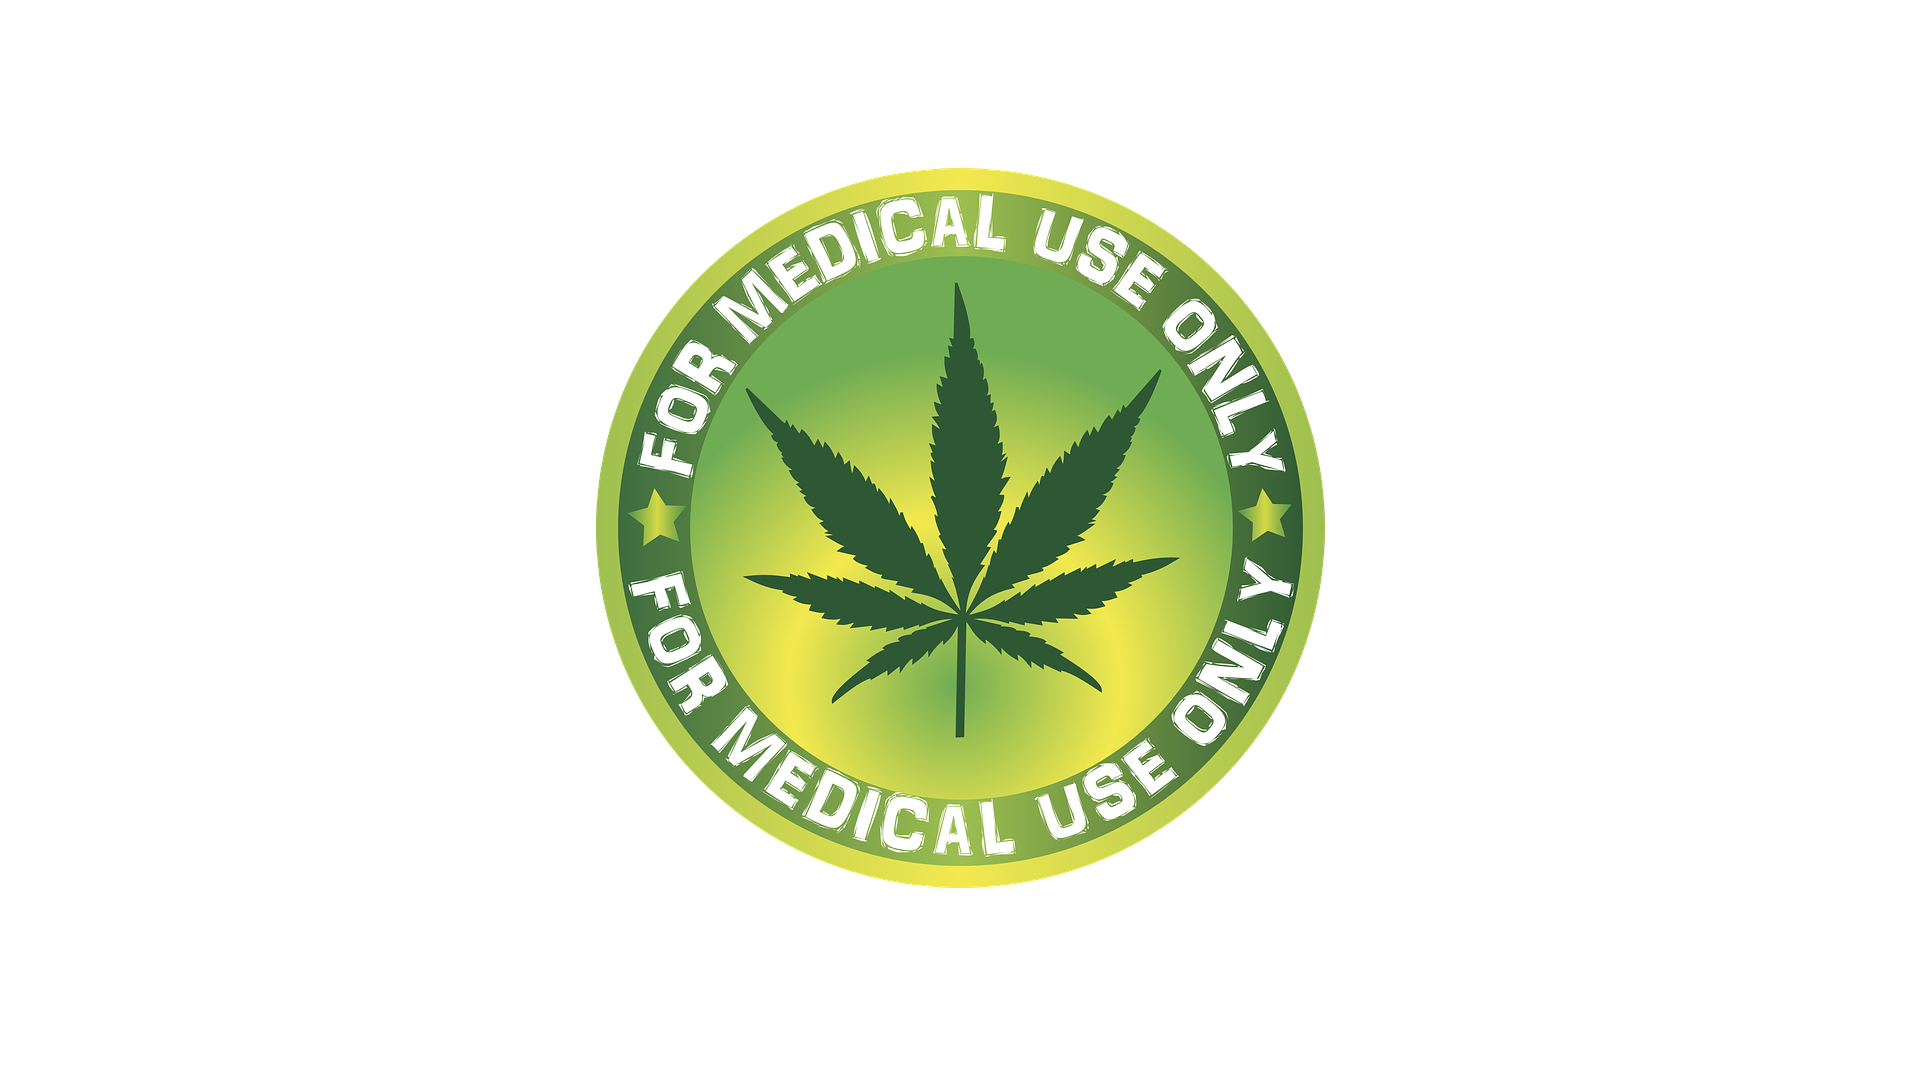 Cannabis Science Inc (OTCMKTS:CBIS) To Commence In-House Clinical Research With GenePro FDA IND